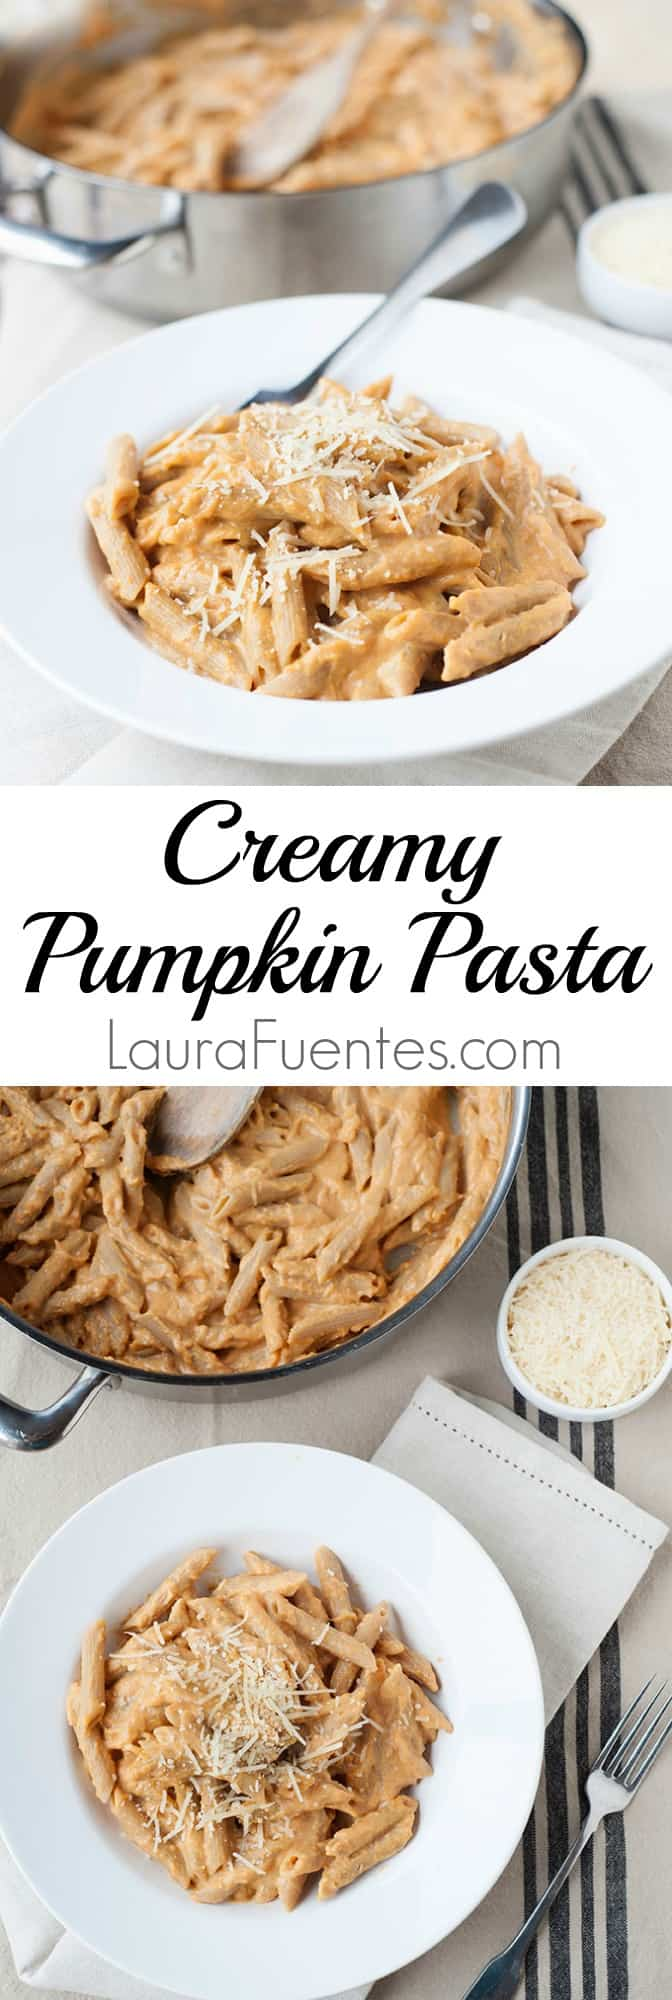 This creamy pumpkin pasta recipe is easy to make and filled with all the classic fall flavors.